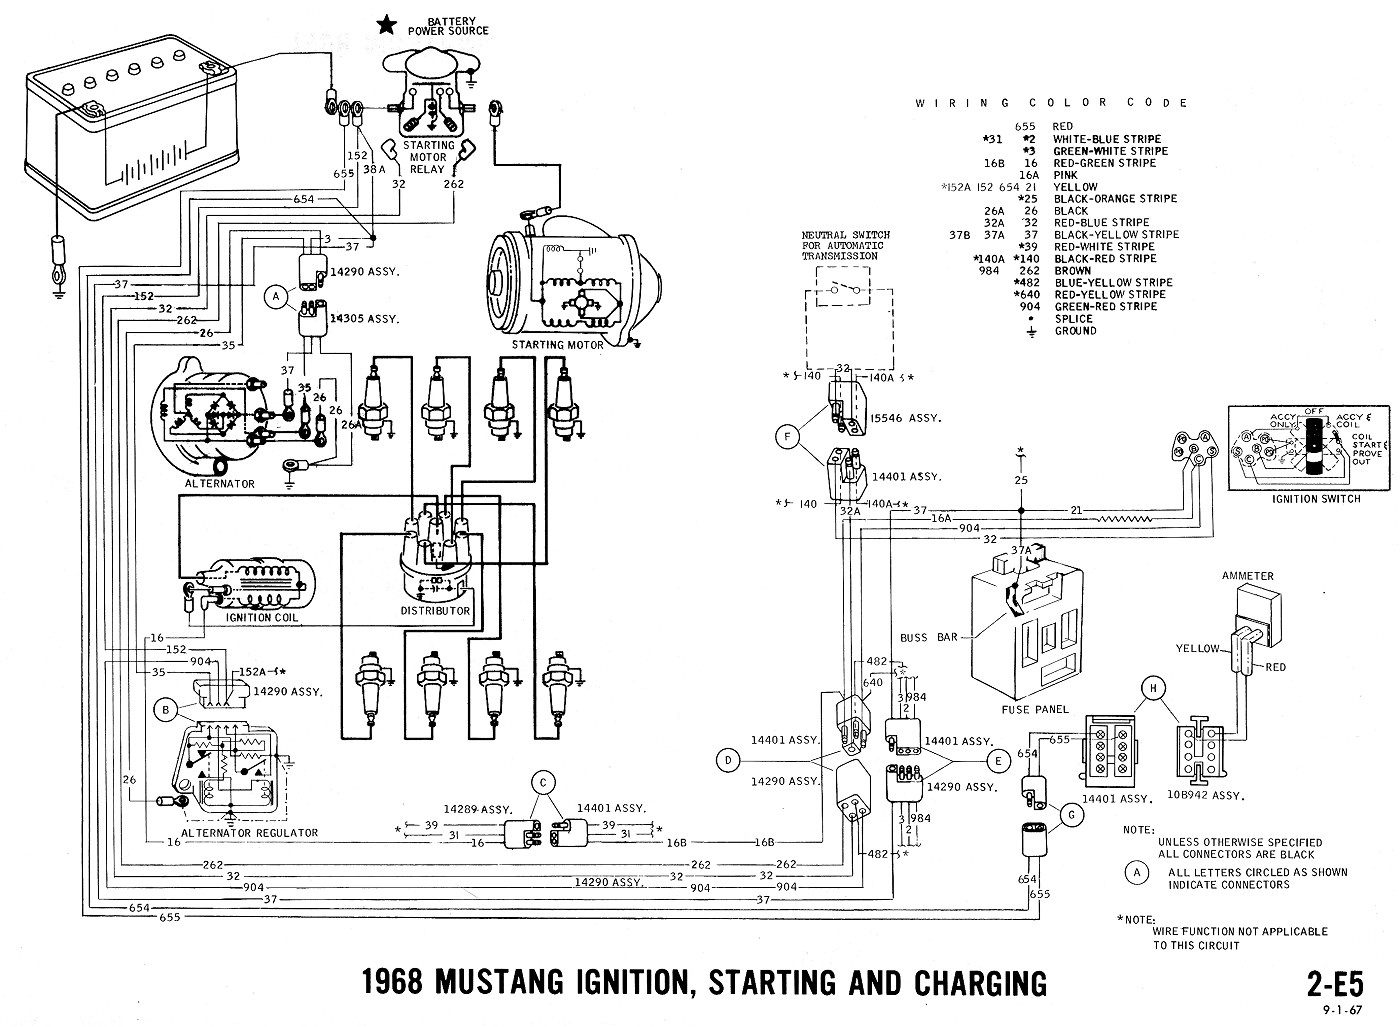 1966 Mustang Wiring Harness Explore Diagram On The Net 1965 Pontiac Gto 1968 Schematics Rh Ksefanzone Com 66 Install